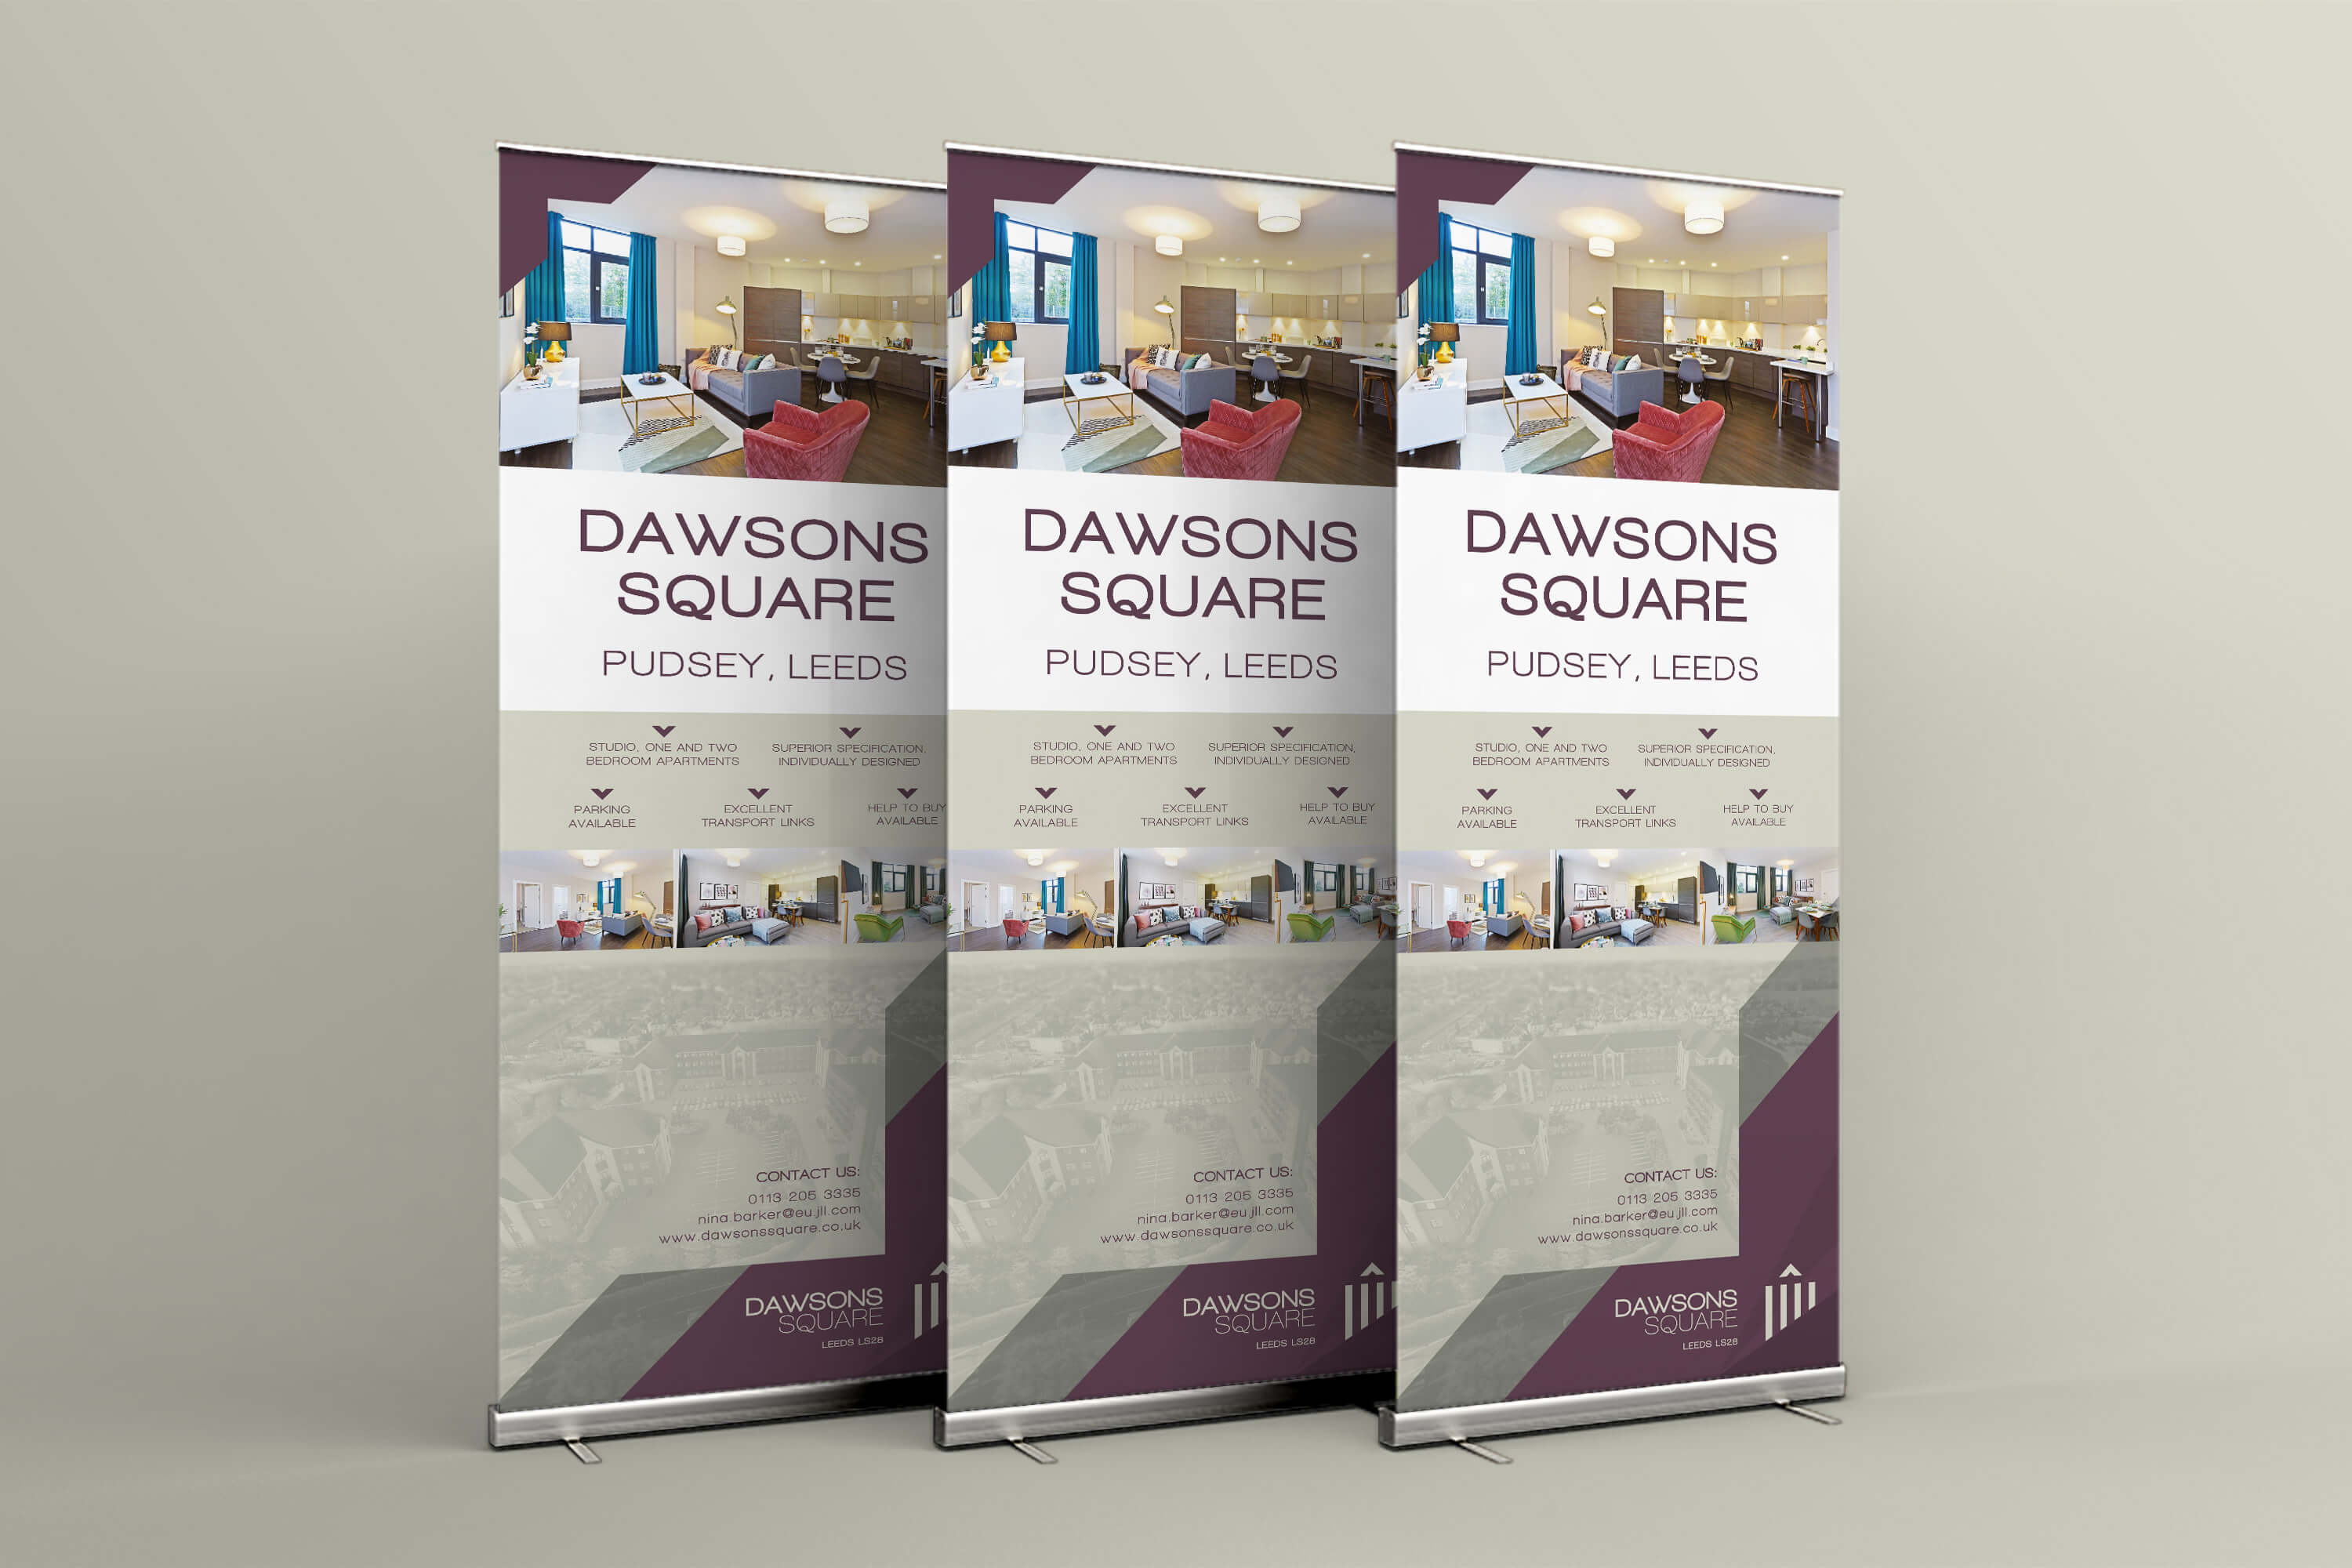 A group of three roller banners with Dawsons Square branding and marketing